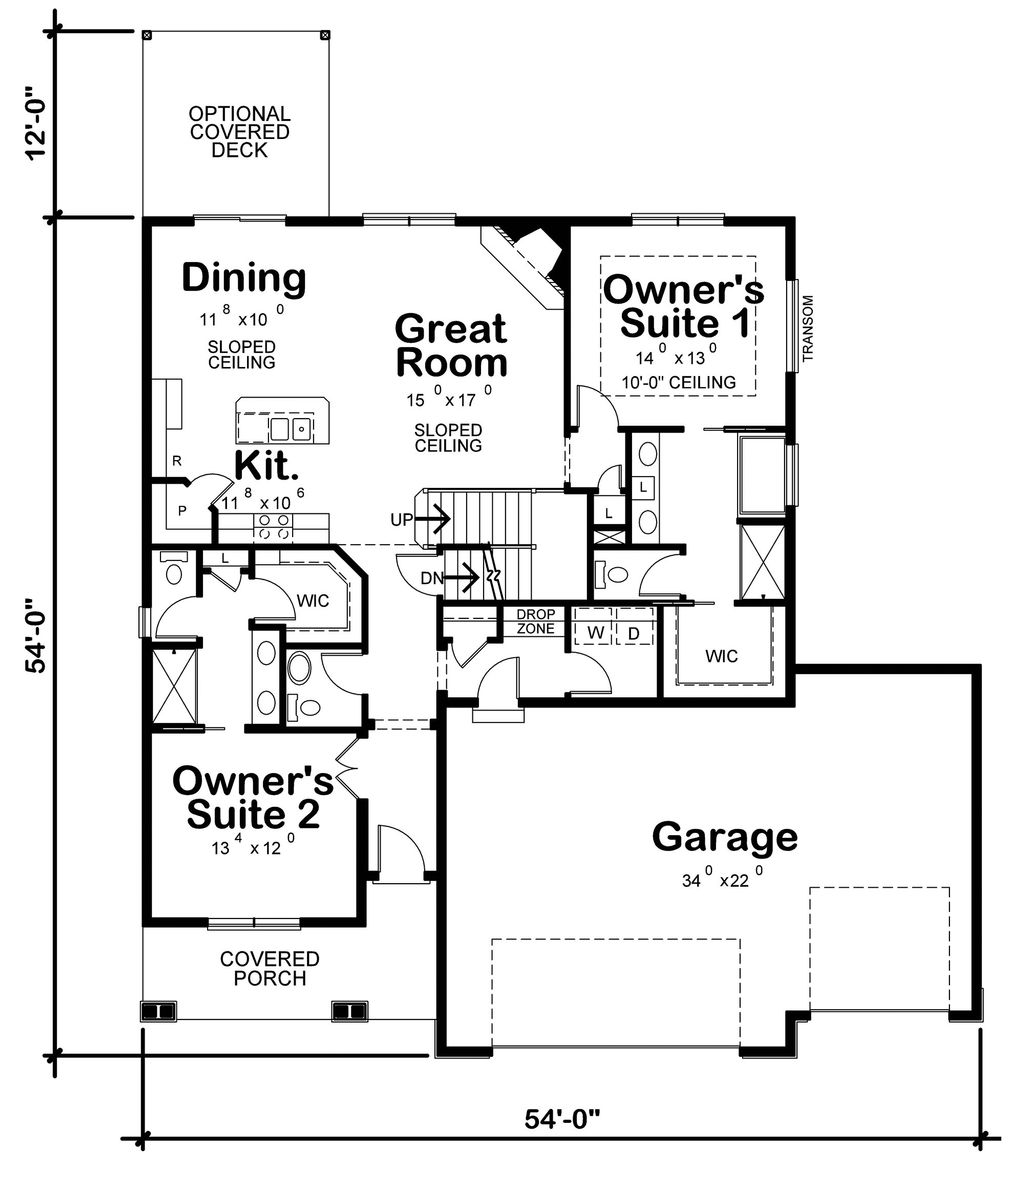 Craftsman Style House Plan - 4 Beds 3.5 Baths 2116 Sq/Ft ... on house elevations, house models, house types, house layout, house styles, house construction, house foundation, house drawings, house building, house exterior, house maps, house clip art, house rendering, house blueprints, house painting, house framing, house plants, house roof, house structure, house design,